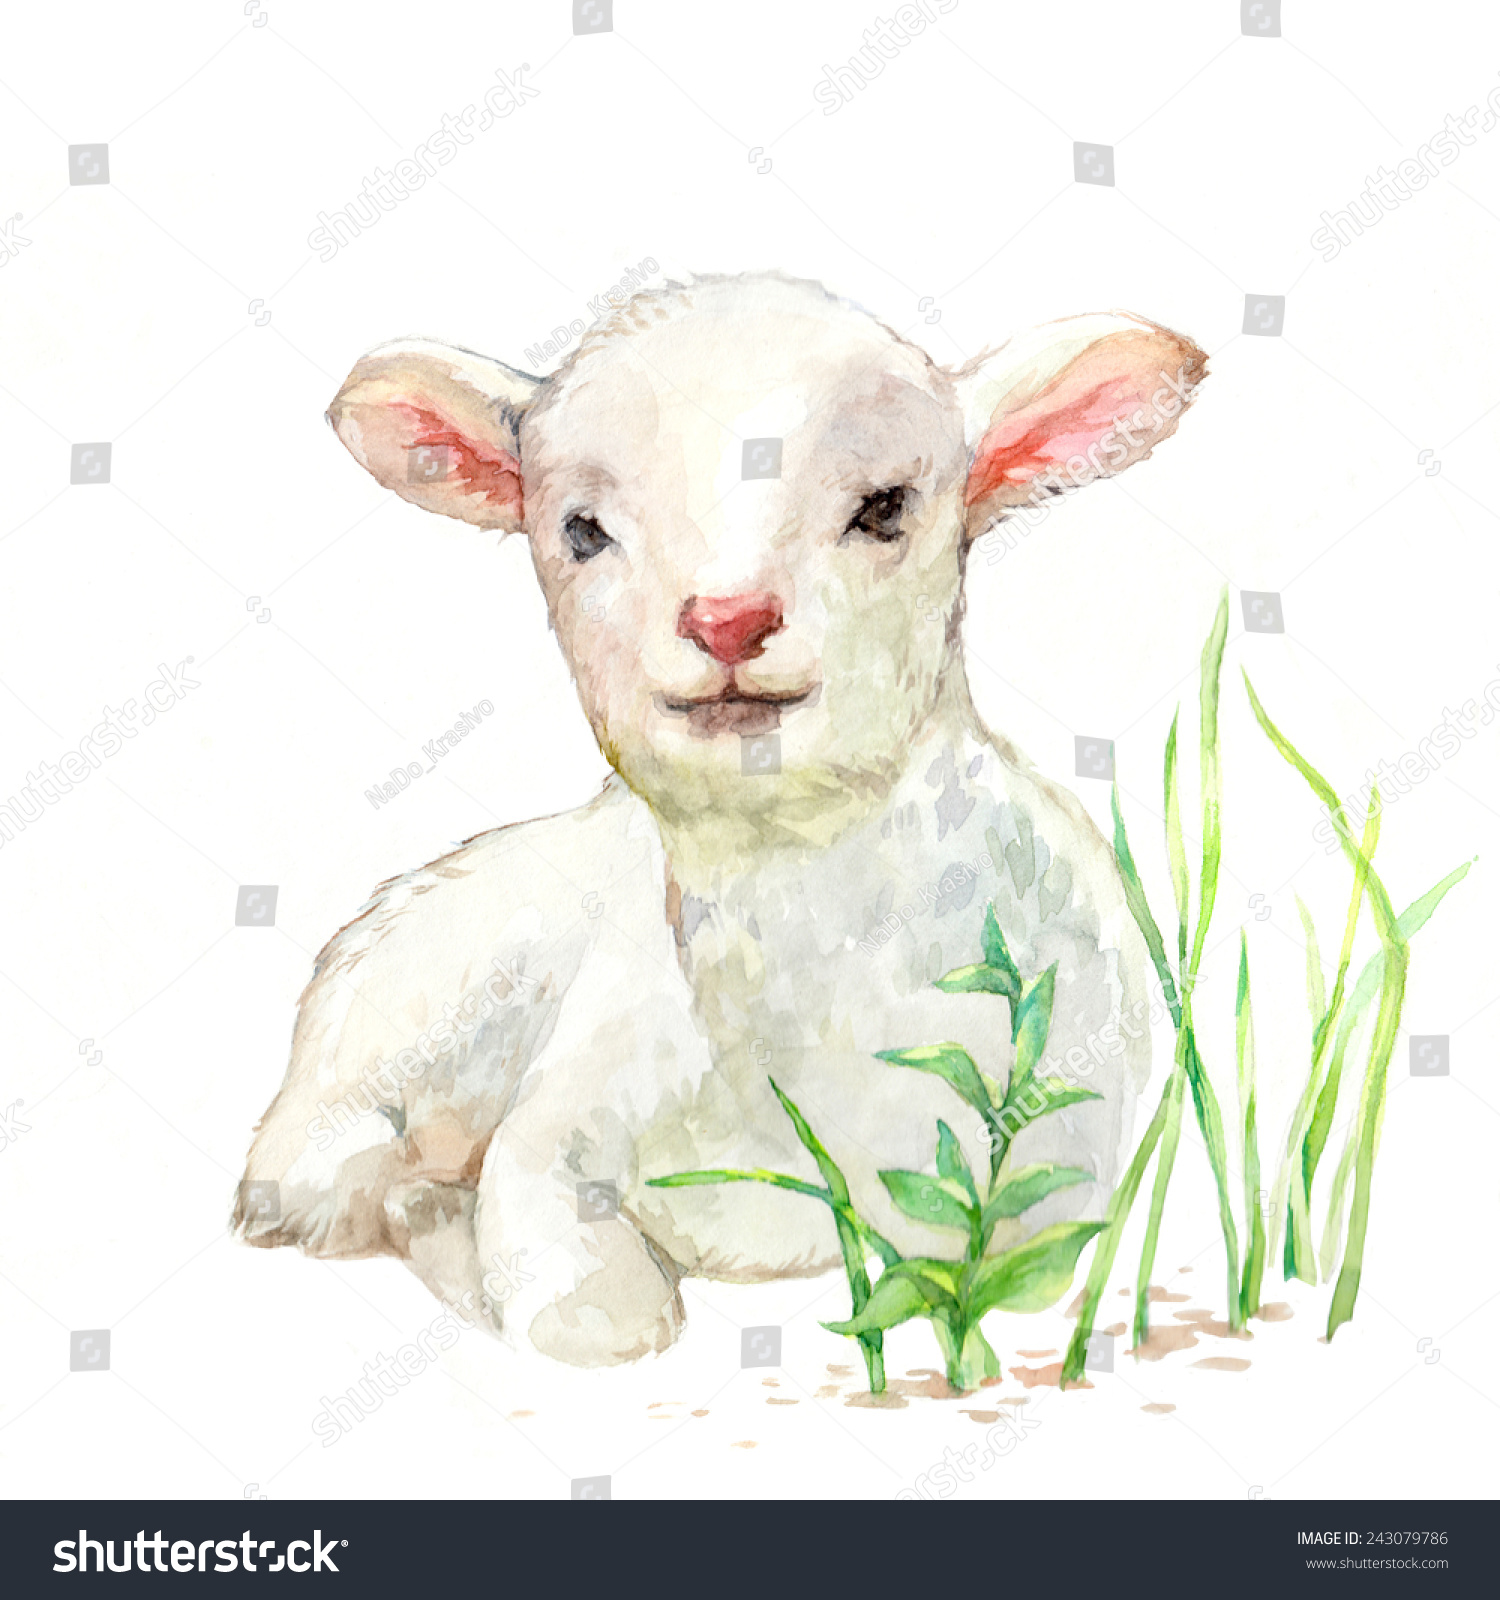 Baby Lamb Drawing Cute Little Lamb On White Background Stock Illustration